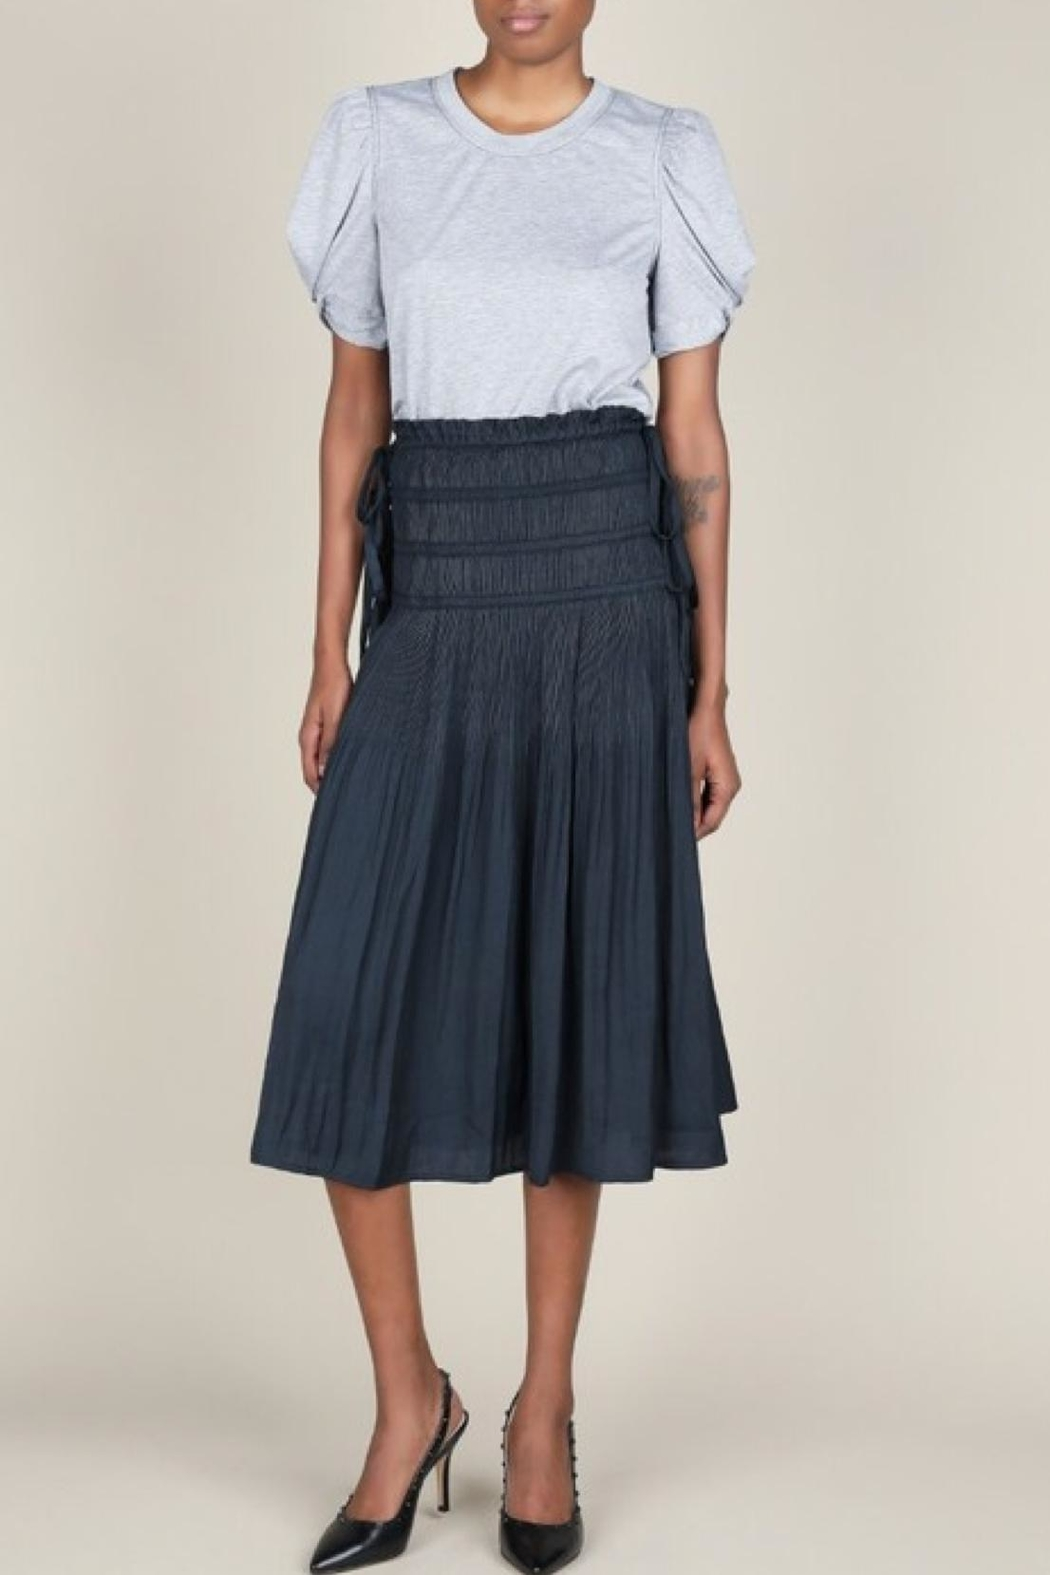 Current Air Pleated Midi Skirt - Main Image